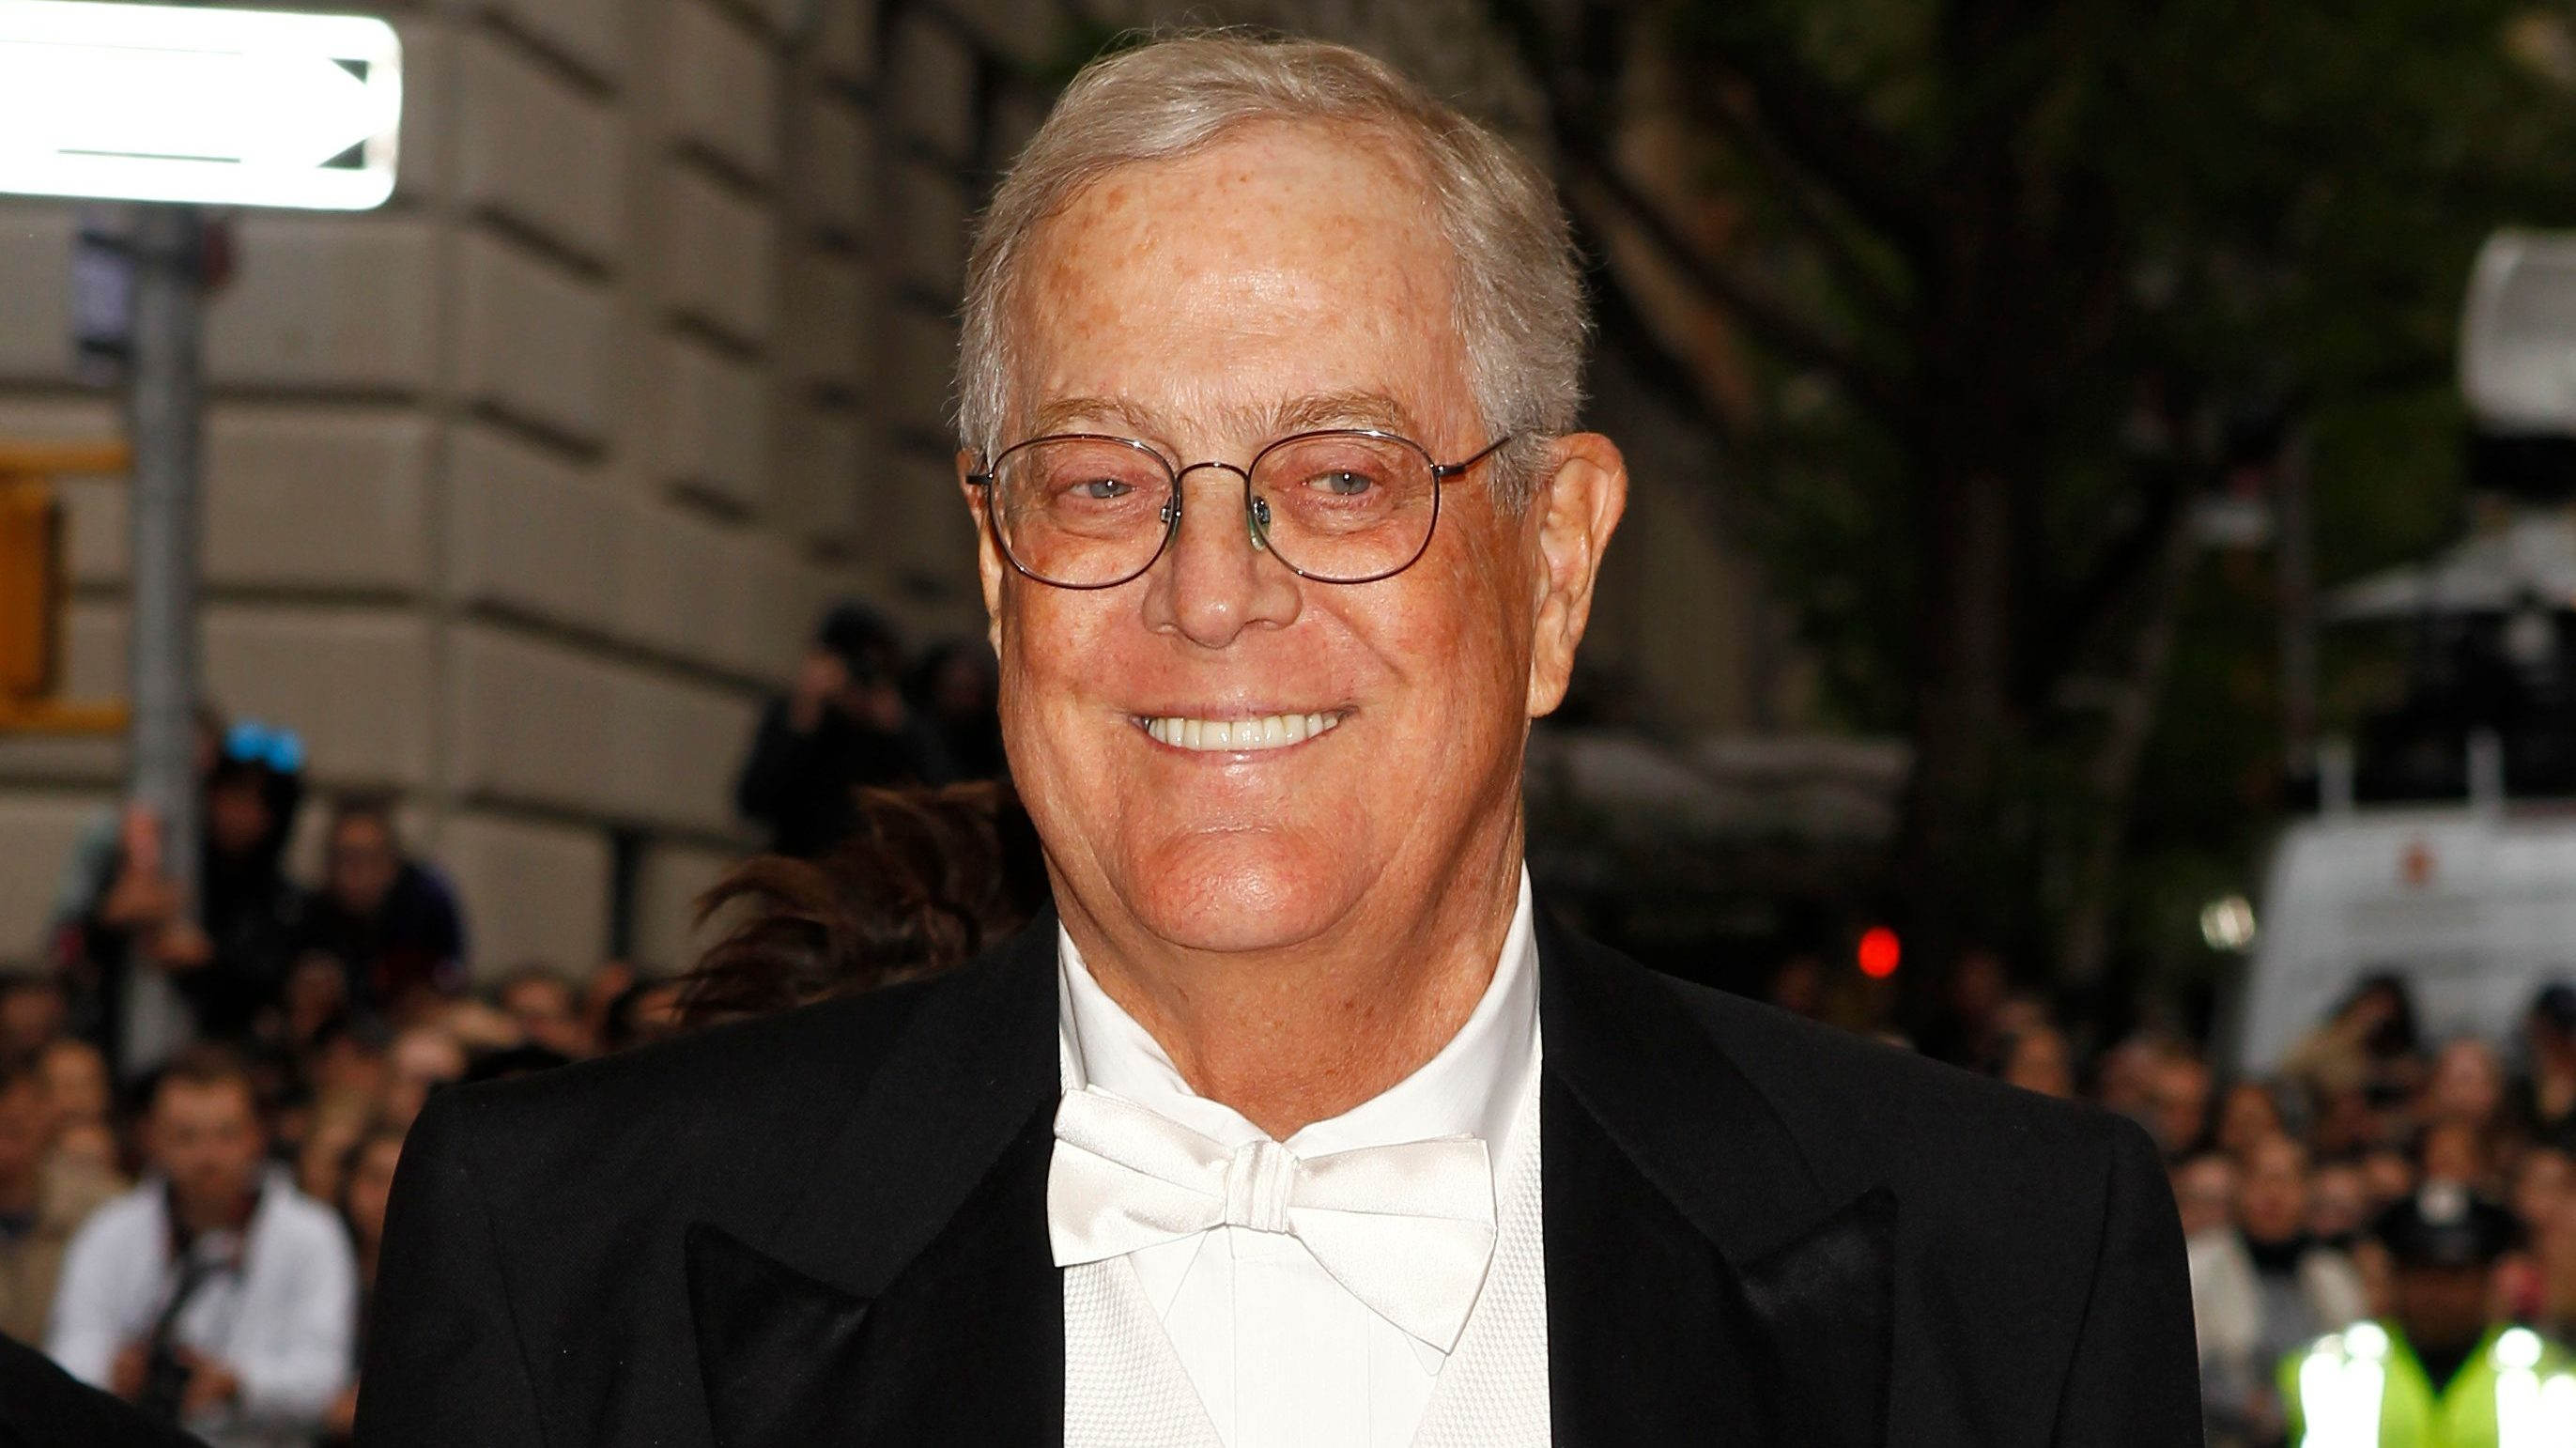 Billionaire David Koch doesn't want millennials to be happy paying taxes.